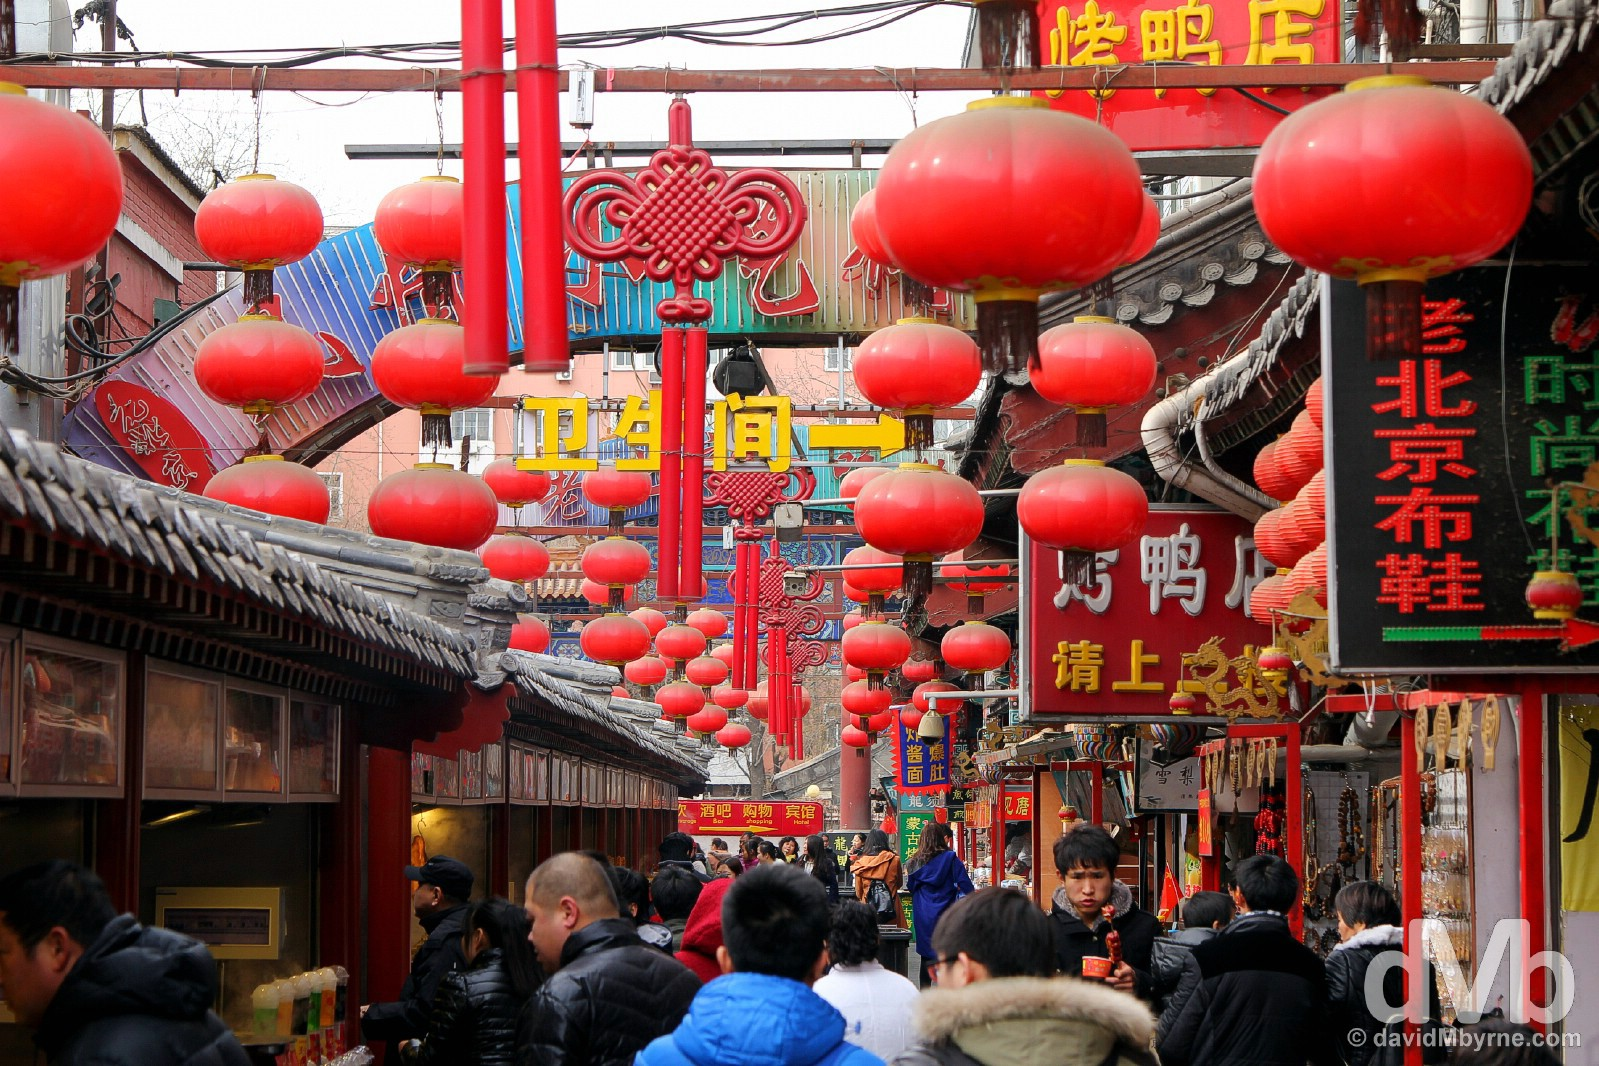 Hustle & bustle in the popular lanes of the Wangfujing district of Beijing, China. February 4, 2015.